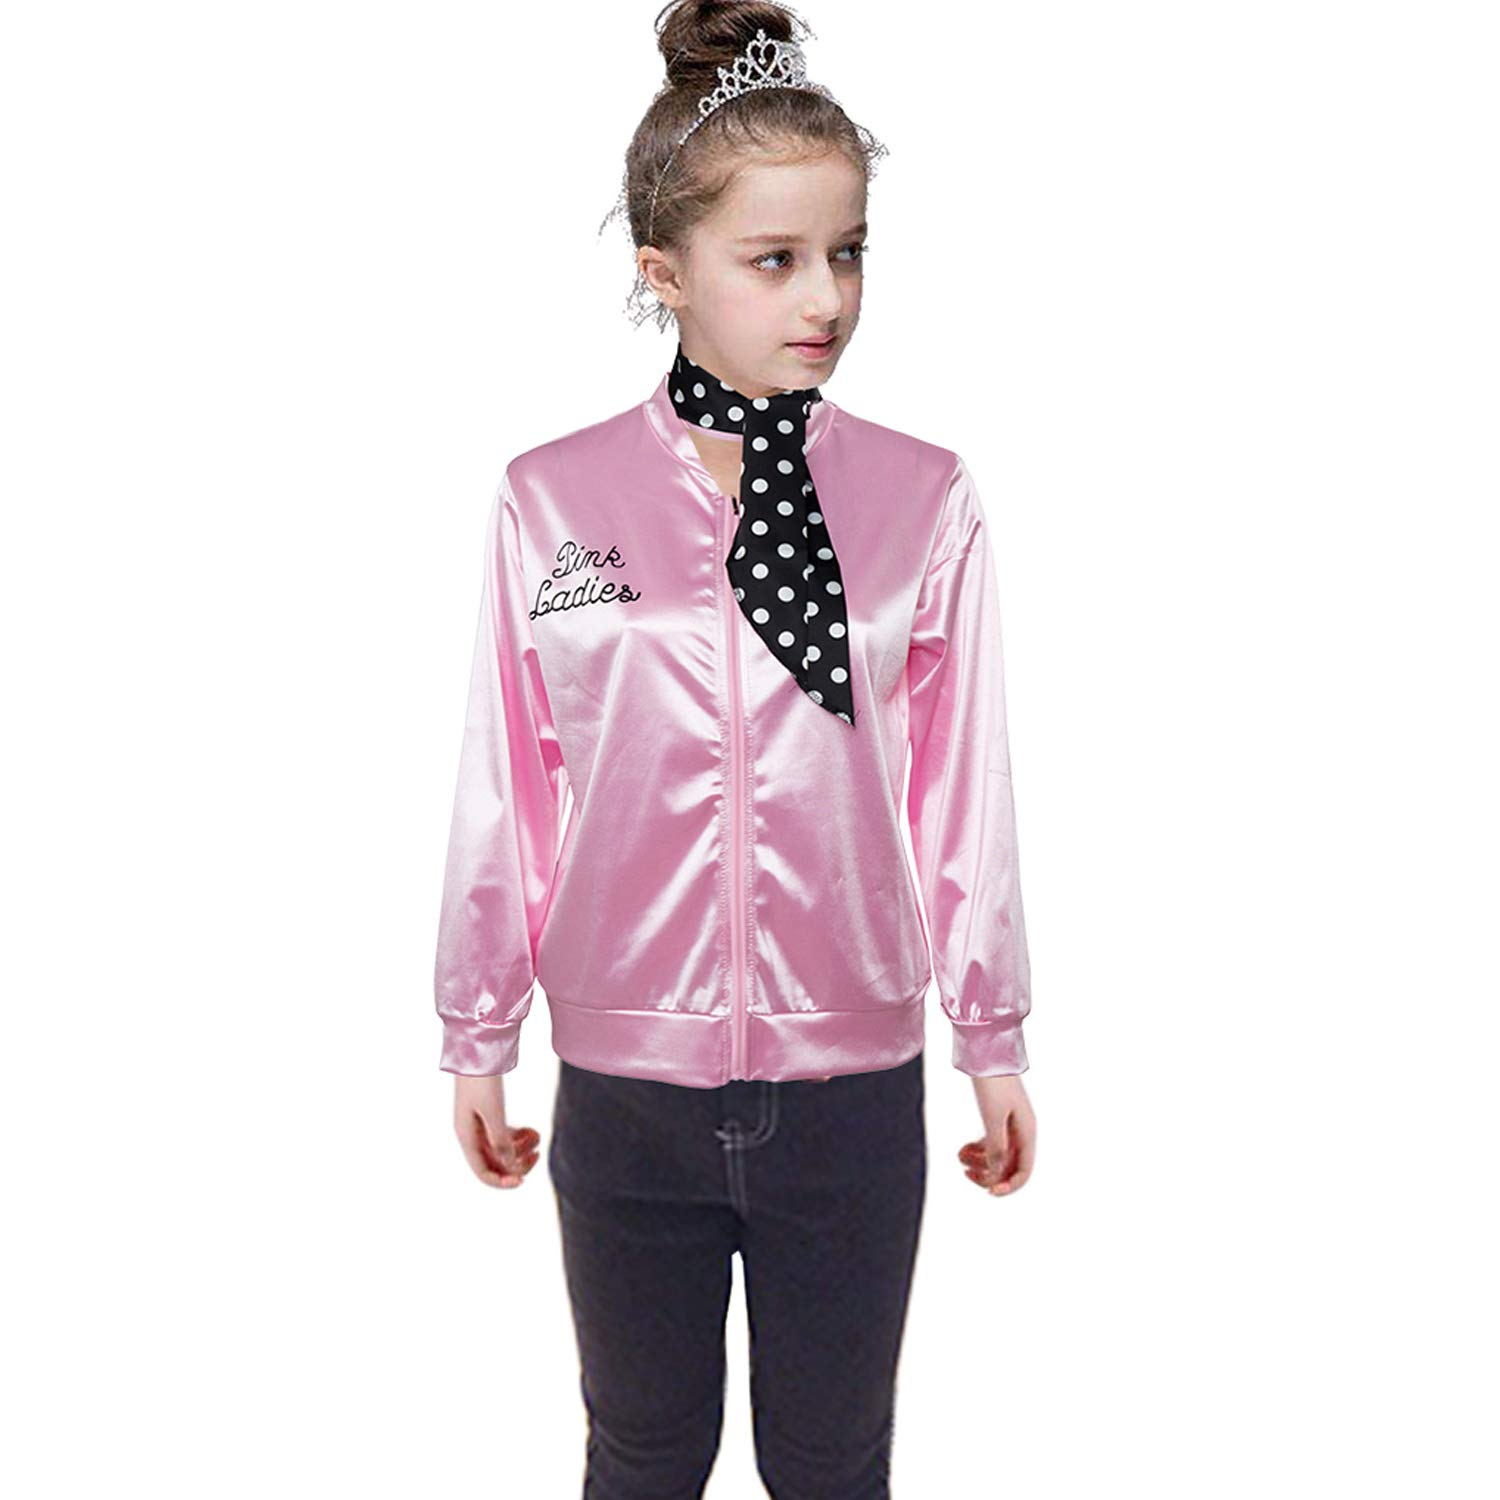 82582cc2df Child Pink Ladies Jacket 50S Grease T-Bird Costume with Scarf Sizes 6-14.  Fabric  Satin Include Jacket +Scarf A traditional jacket for the pink satin  ladies ...